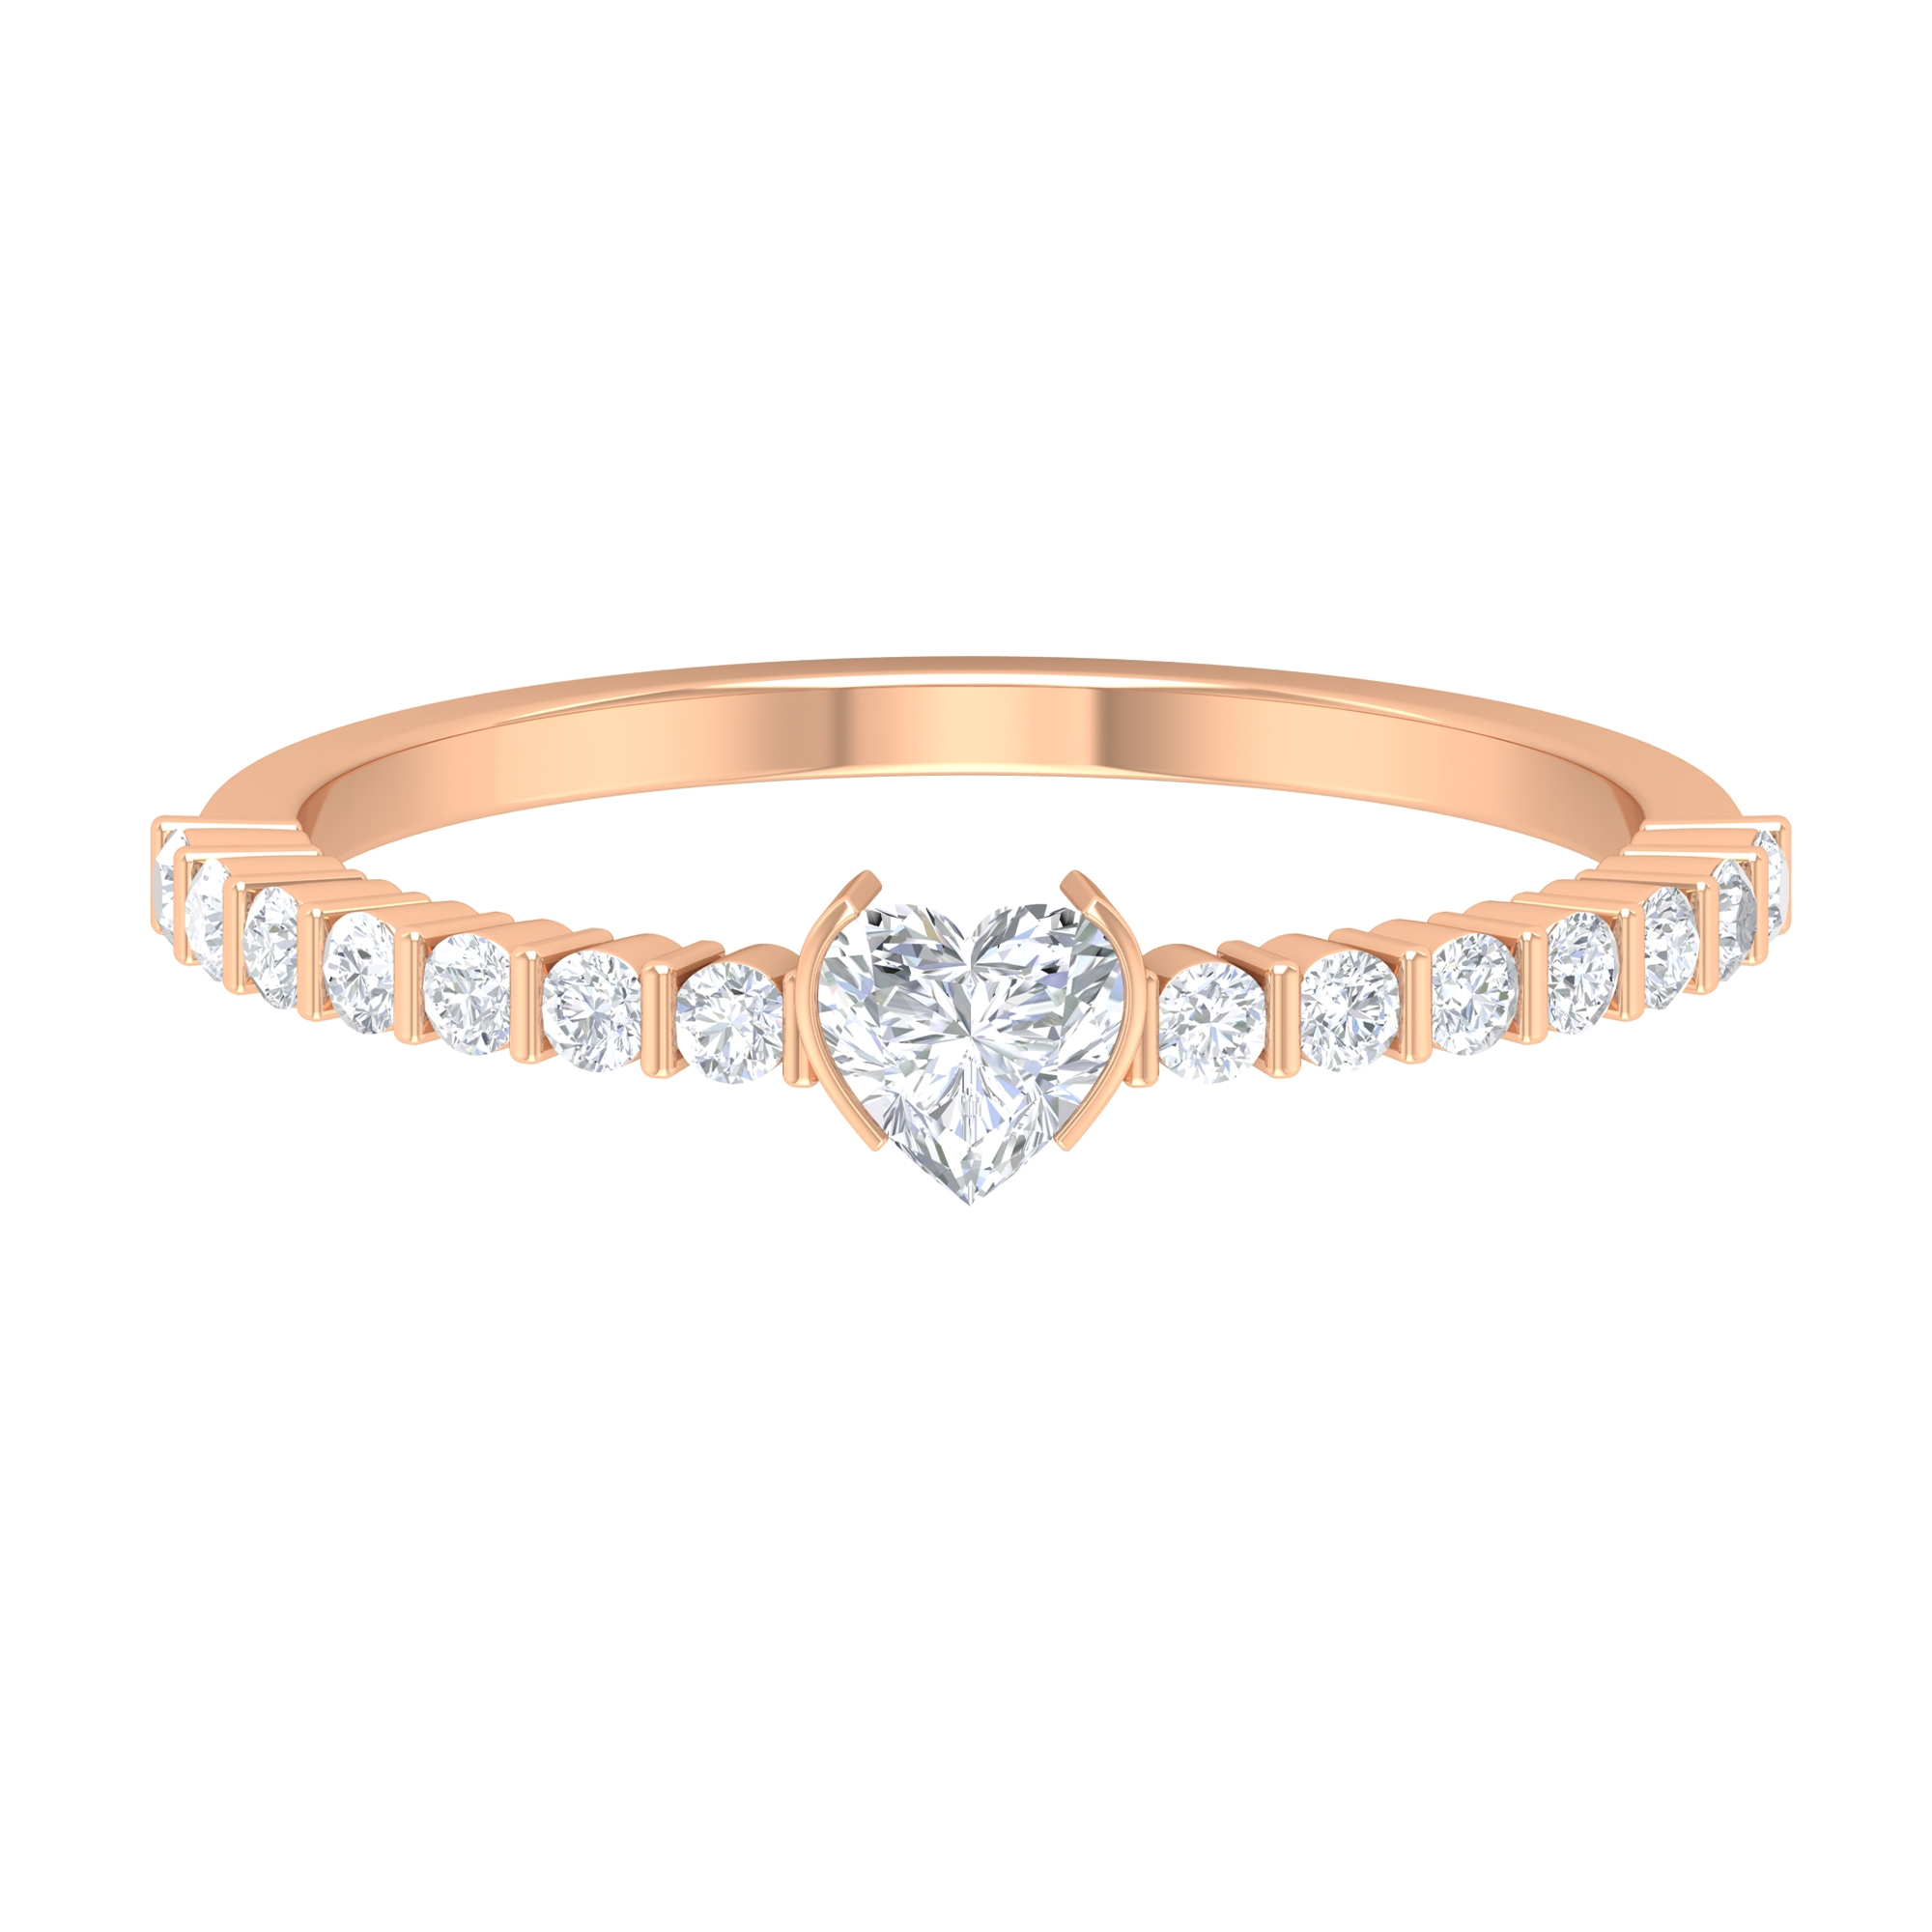 4X4 MM Heart Shape Solitaire Diamond Ring in Bar Setting with Side Stones